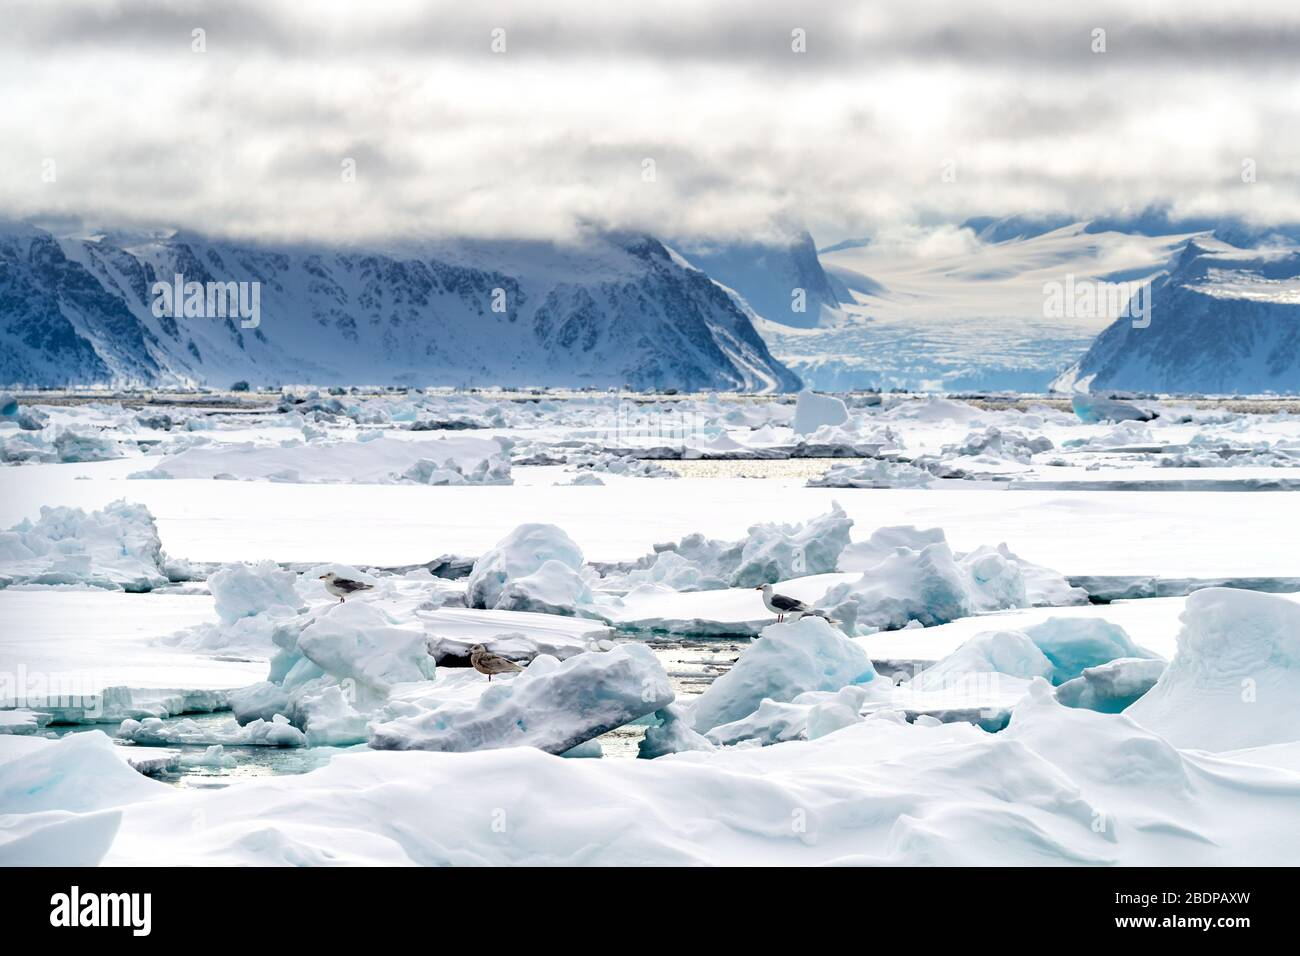 Pack ice in the arctic circle at 80 degrees north, with the mountains and glaciers of Svalbard in the backgound and gulls on the ice in the foreground Stock Photo